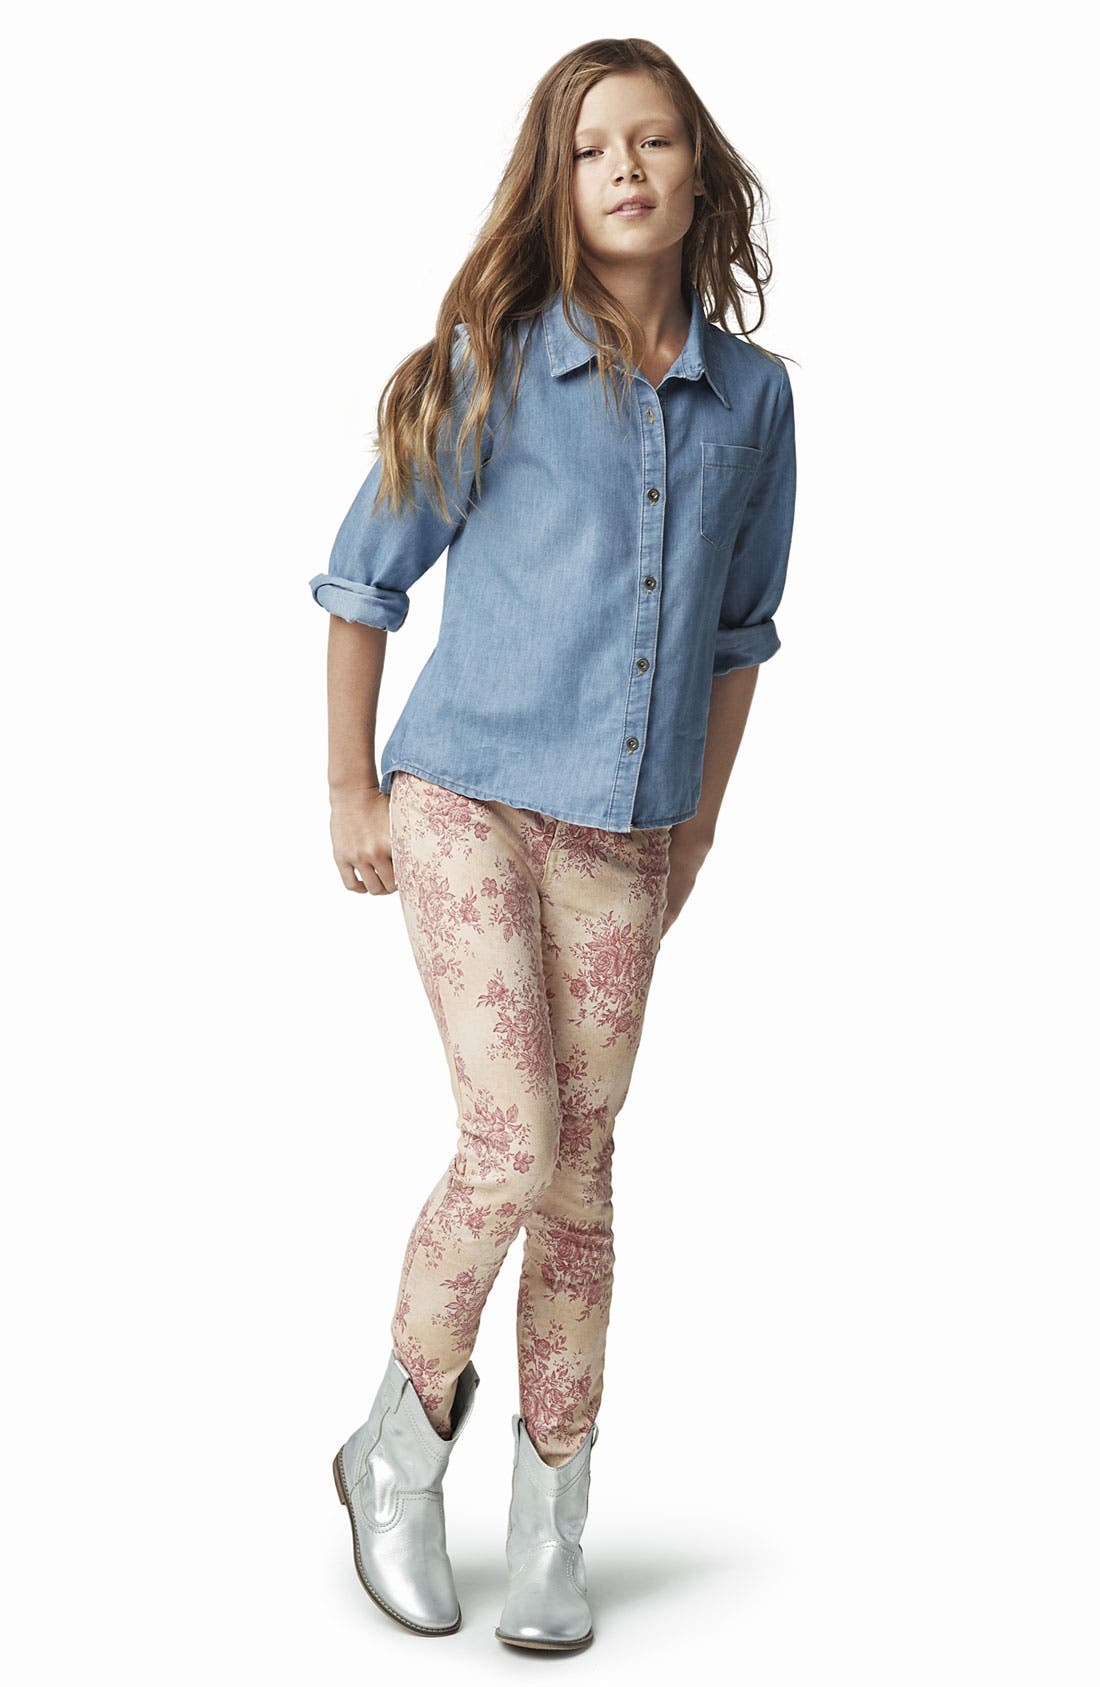 Main Image - Mia Chica Shirt, Joe's Jeans & Peek Boot (Big Girls)